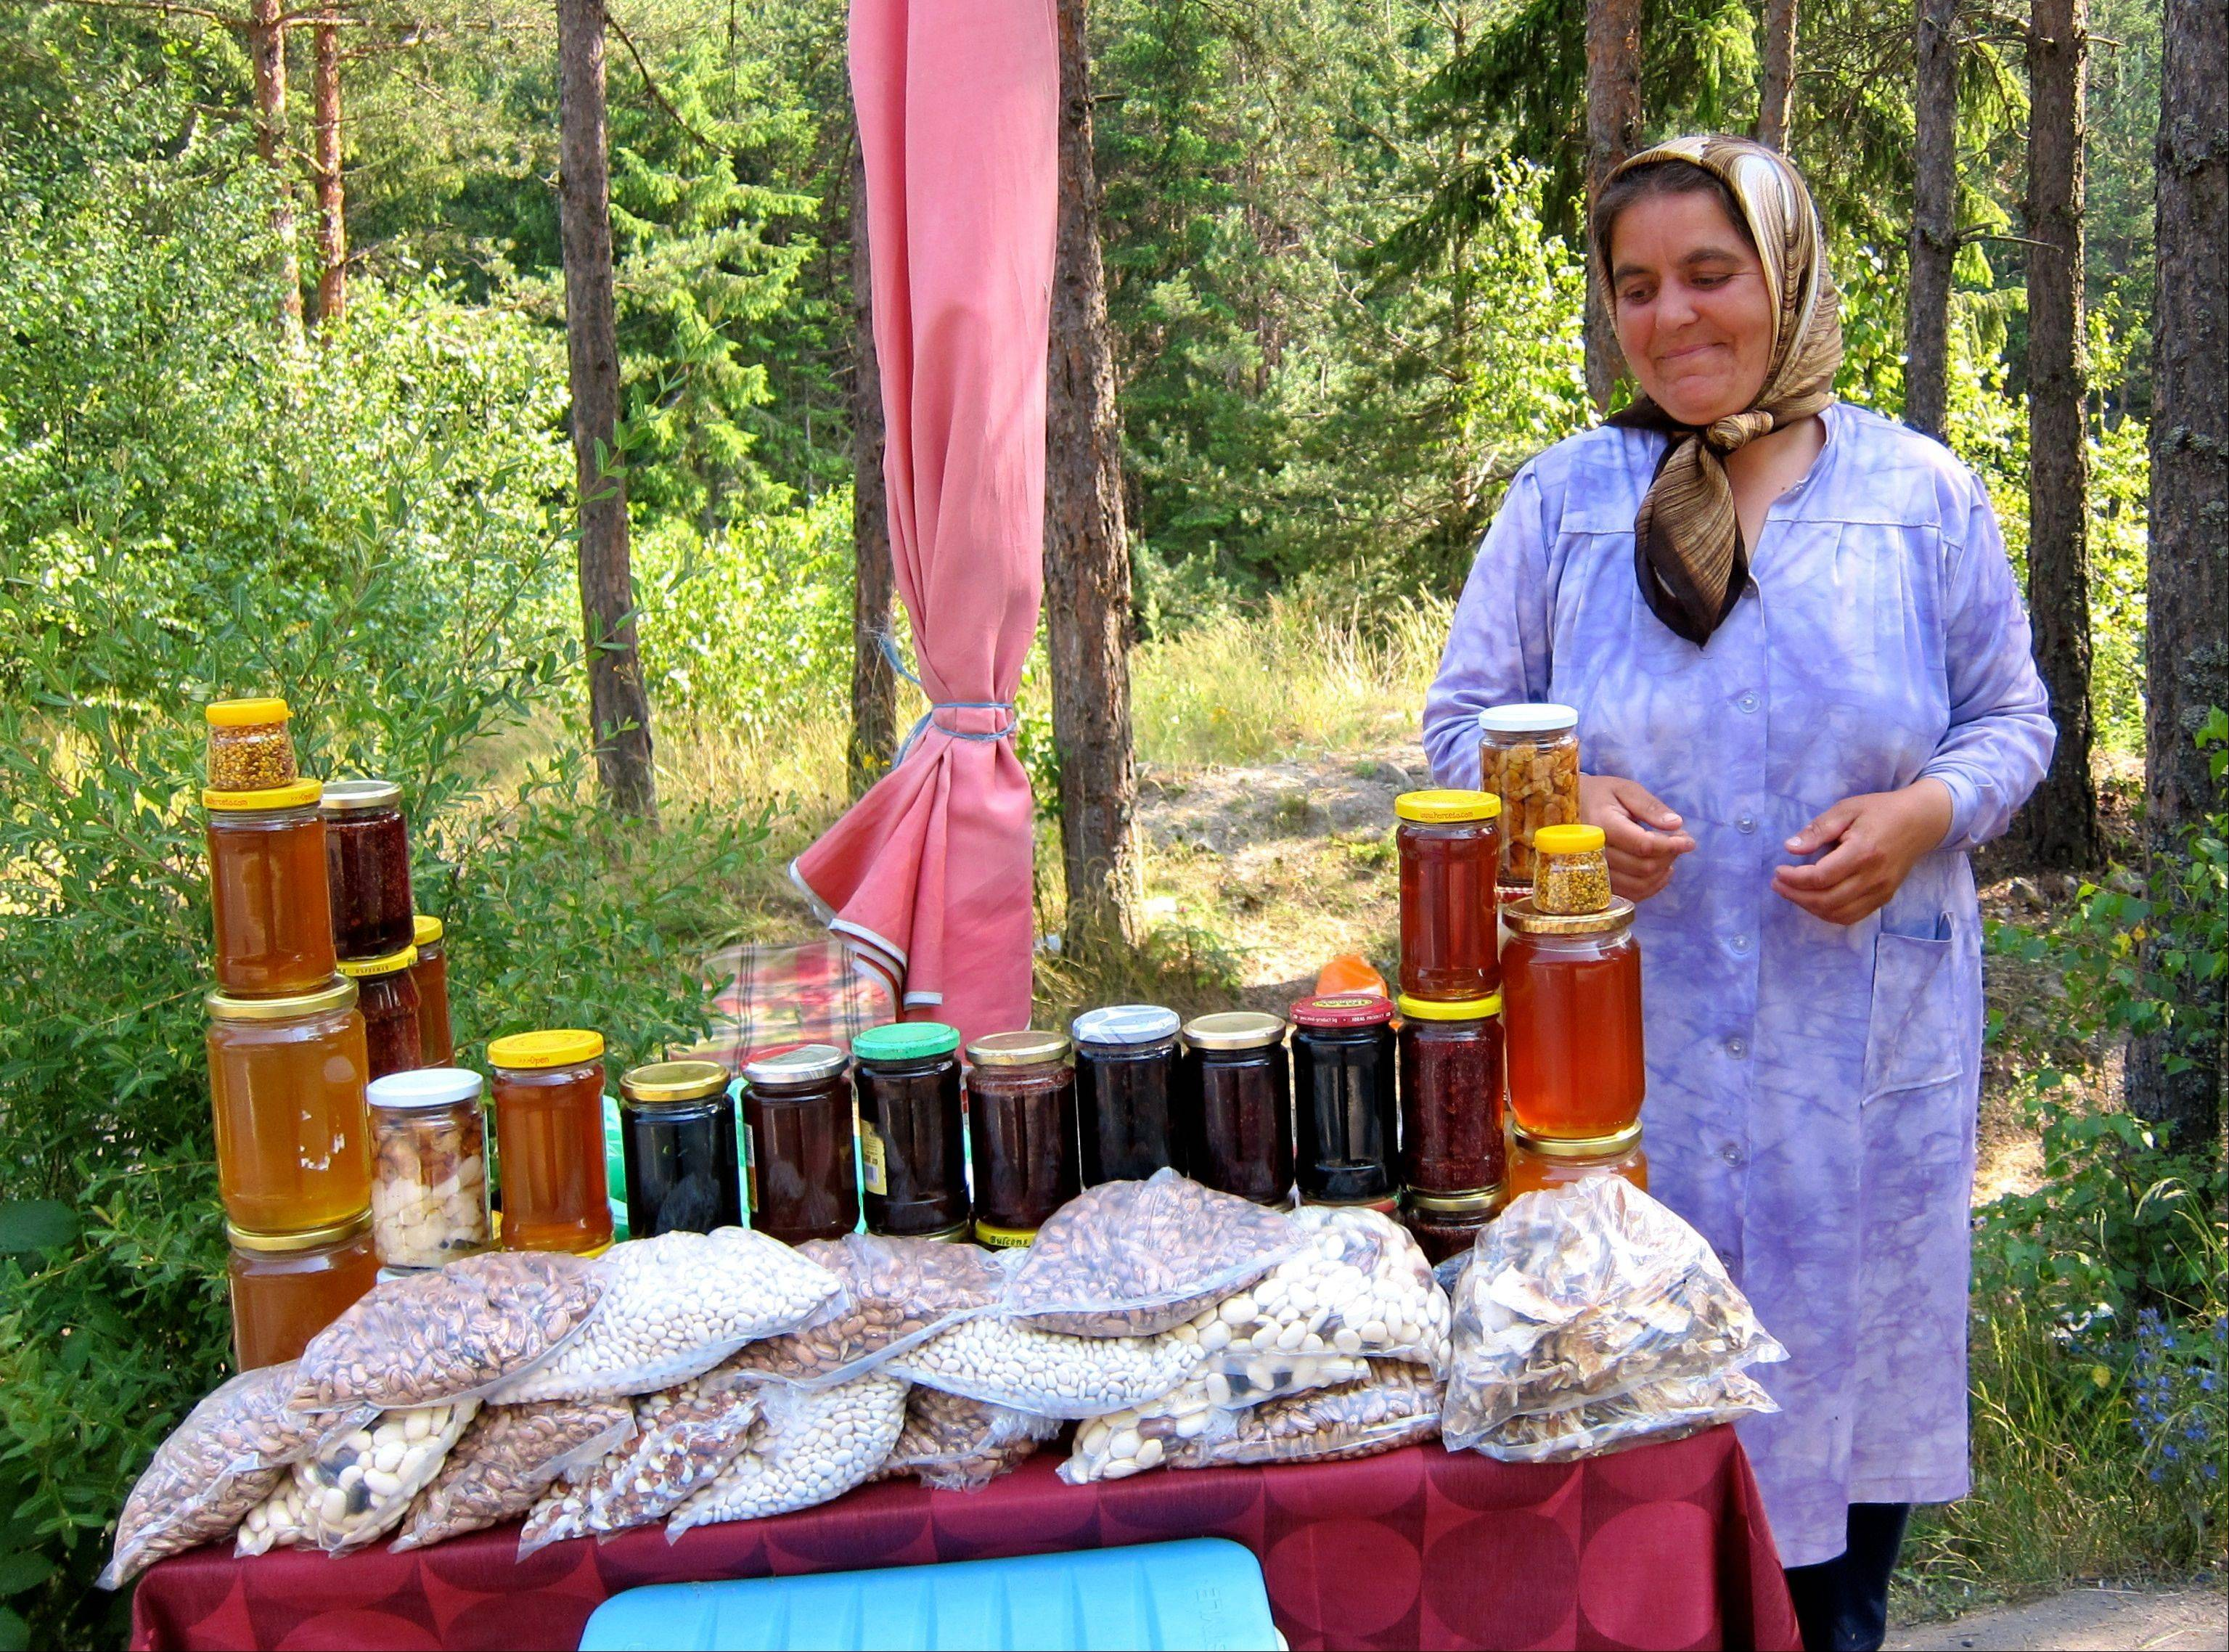 A woman sells honey at a roadside stand in Bulgaria.